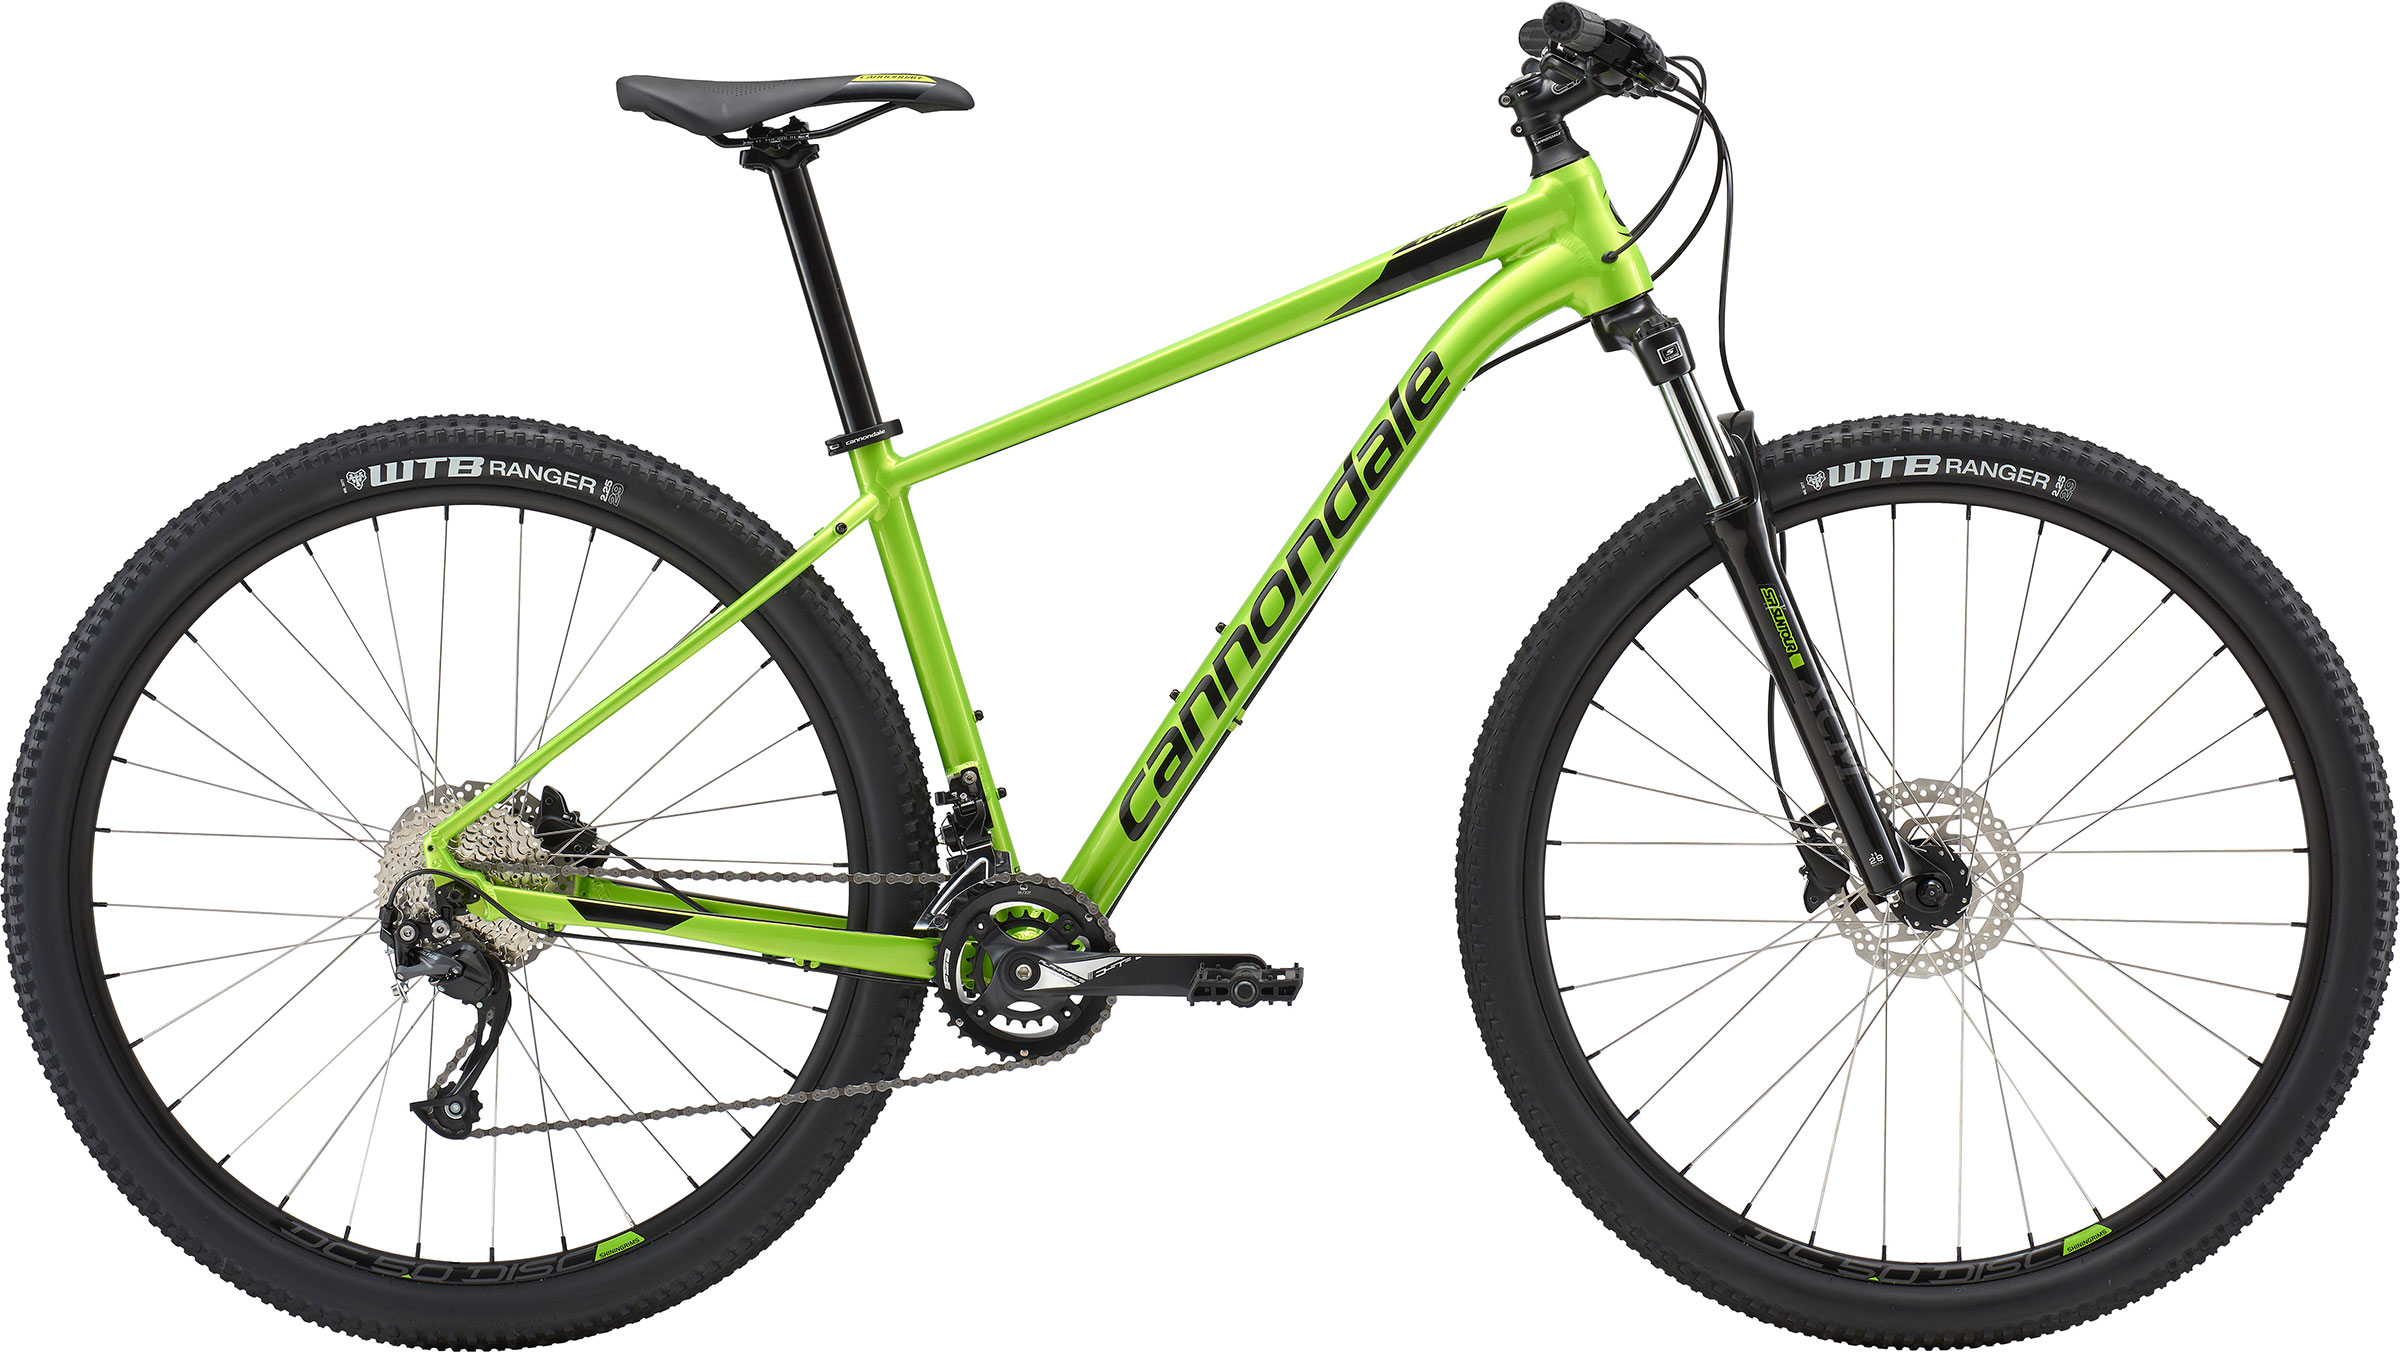 2ec618f9788 Cannondale Trail 7 - Tread Bike Shop